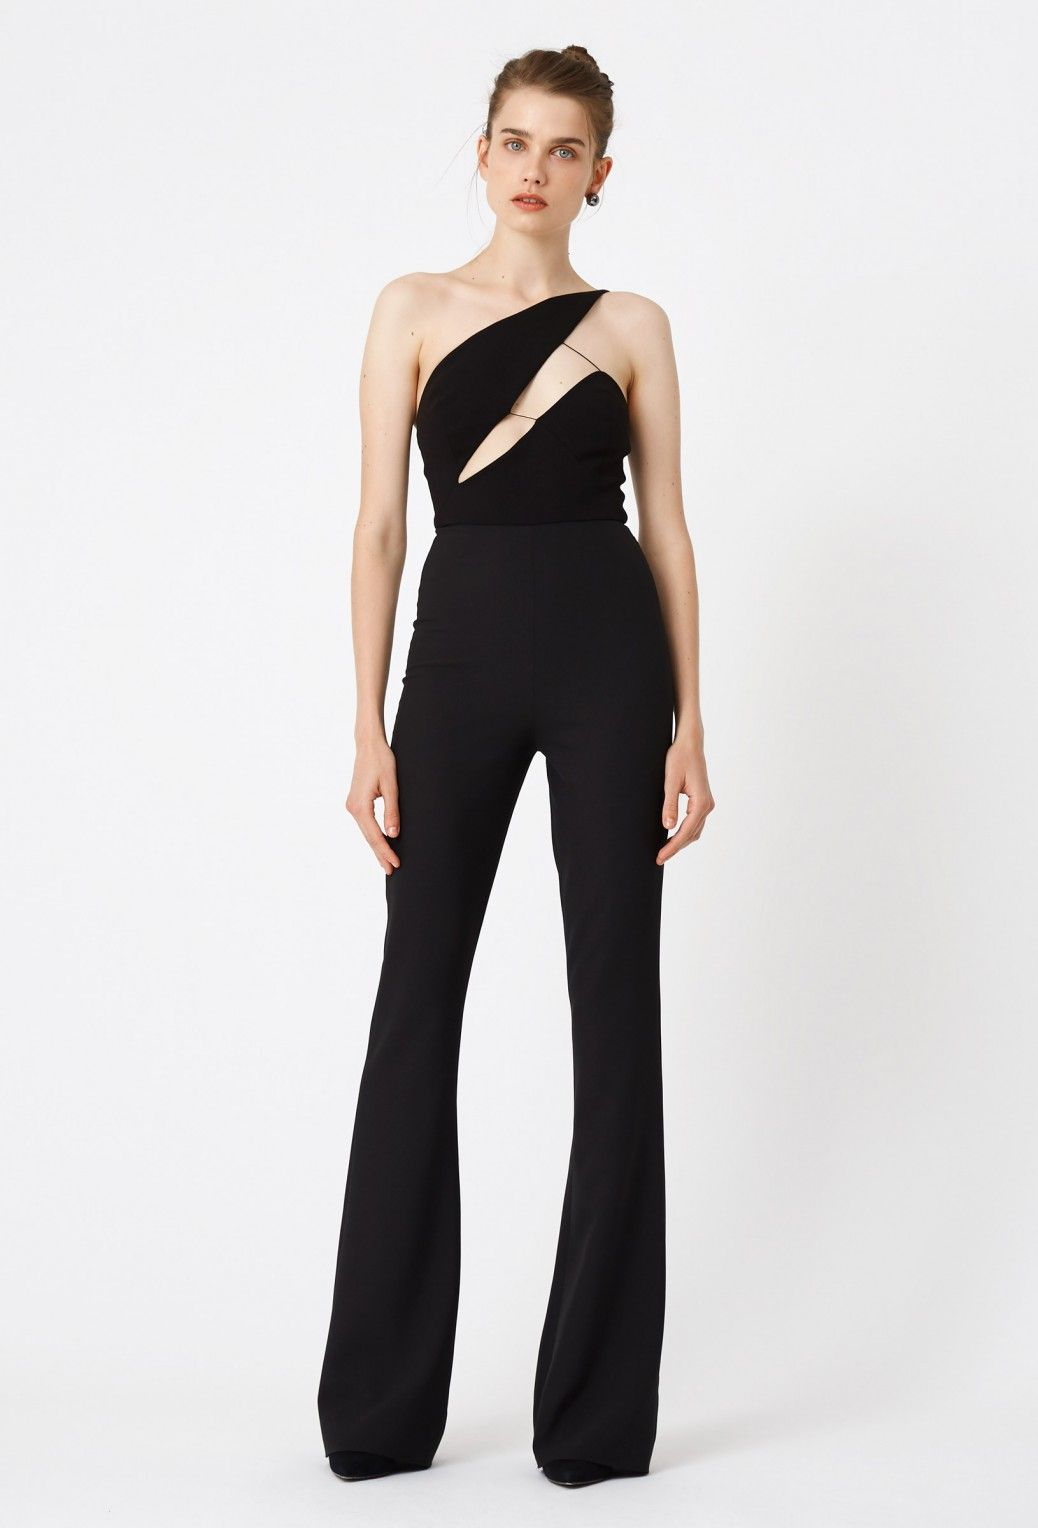 561fae9fdd51 Image 3 of AQ AQ Pembroke One Shoulder Jumpsuit · Black